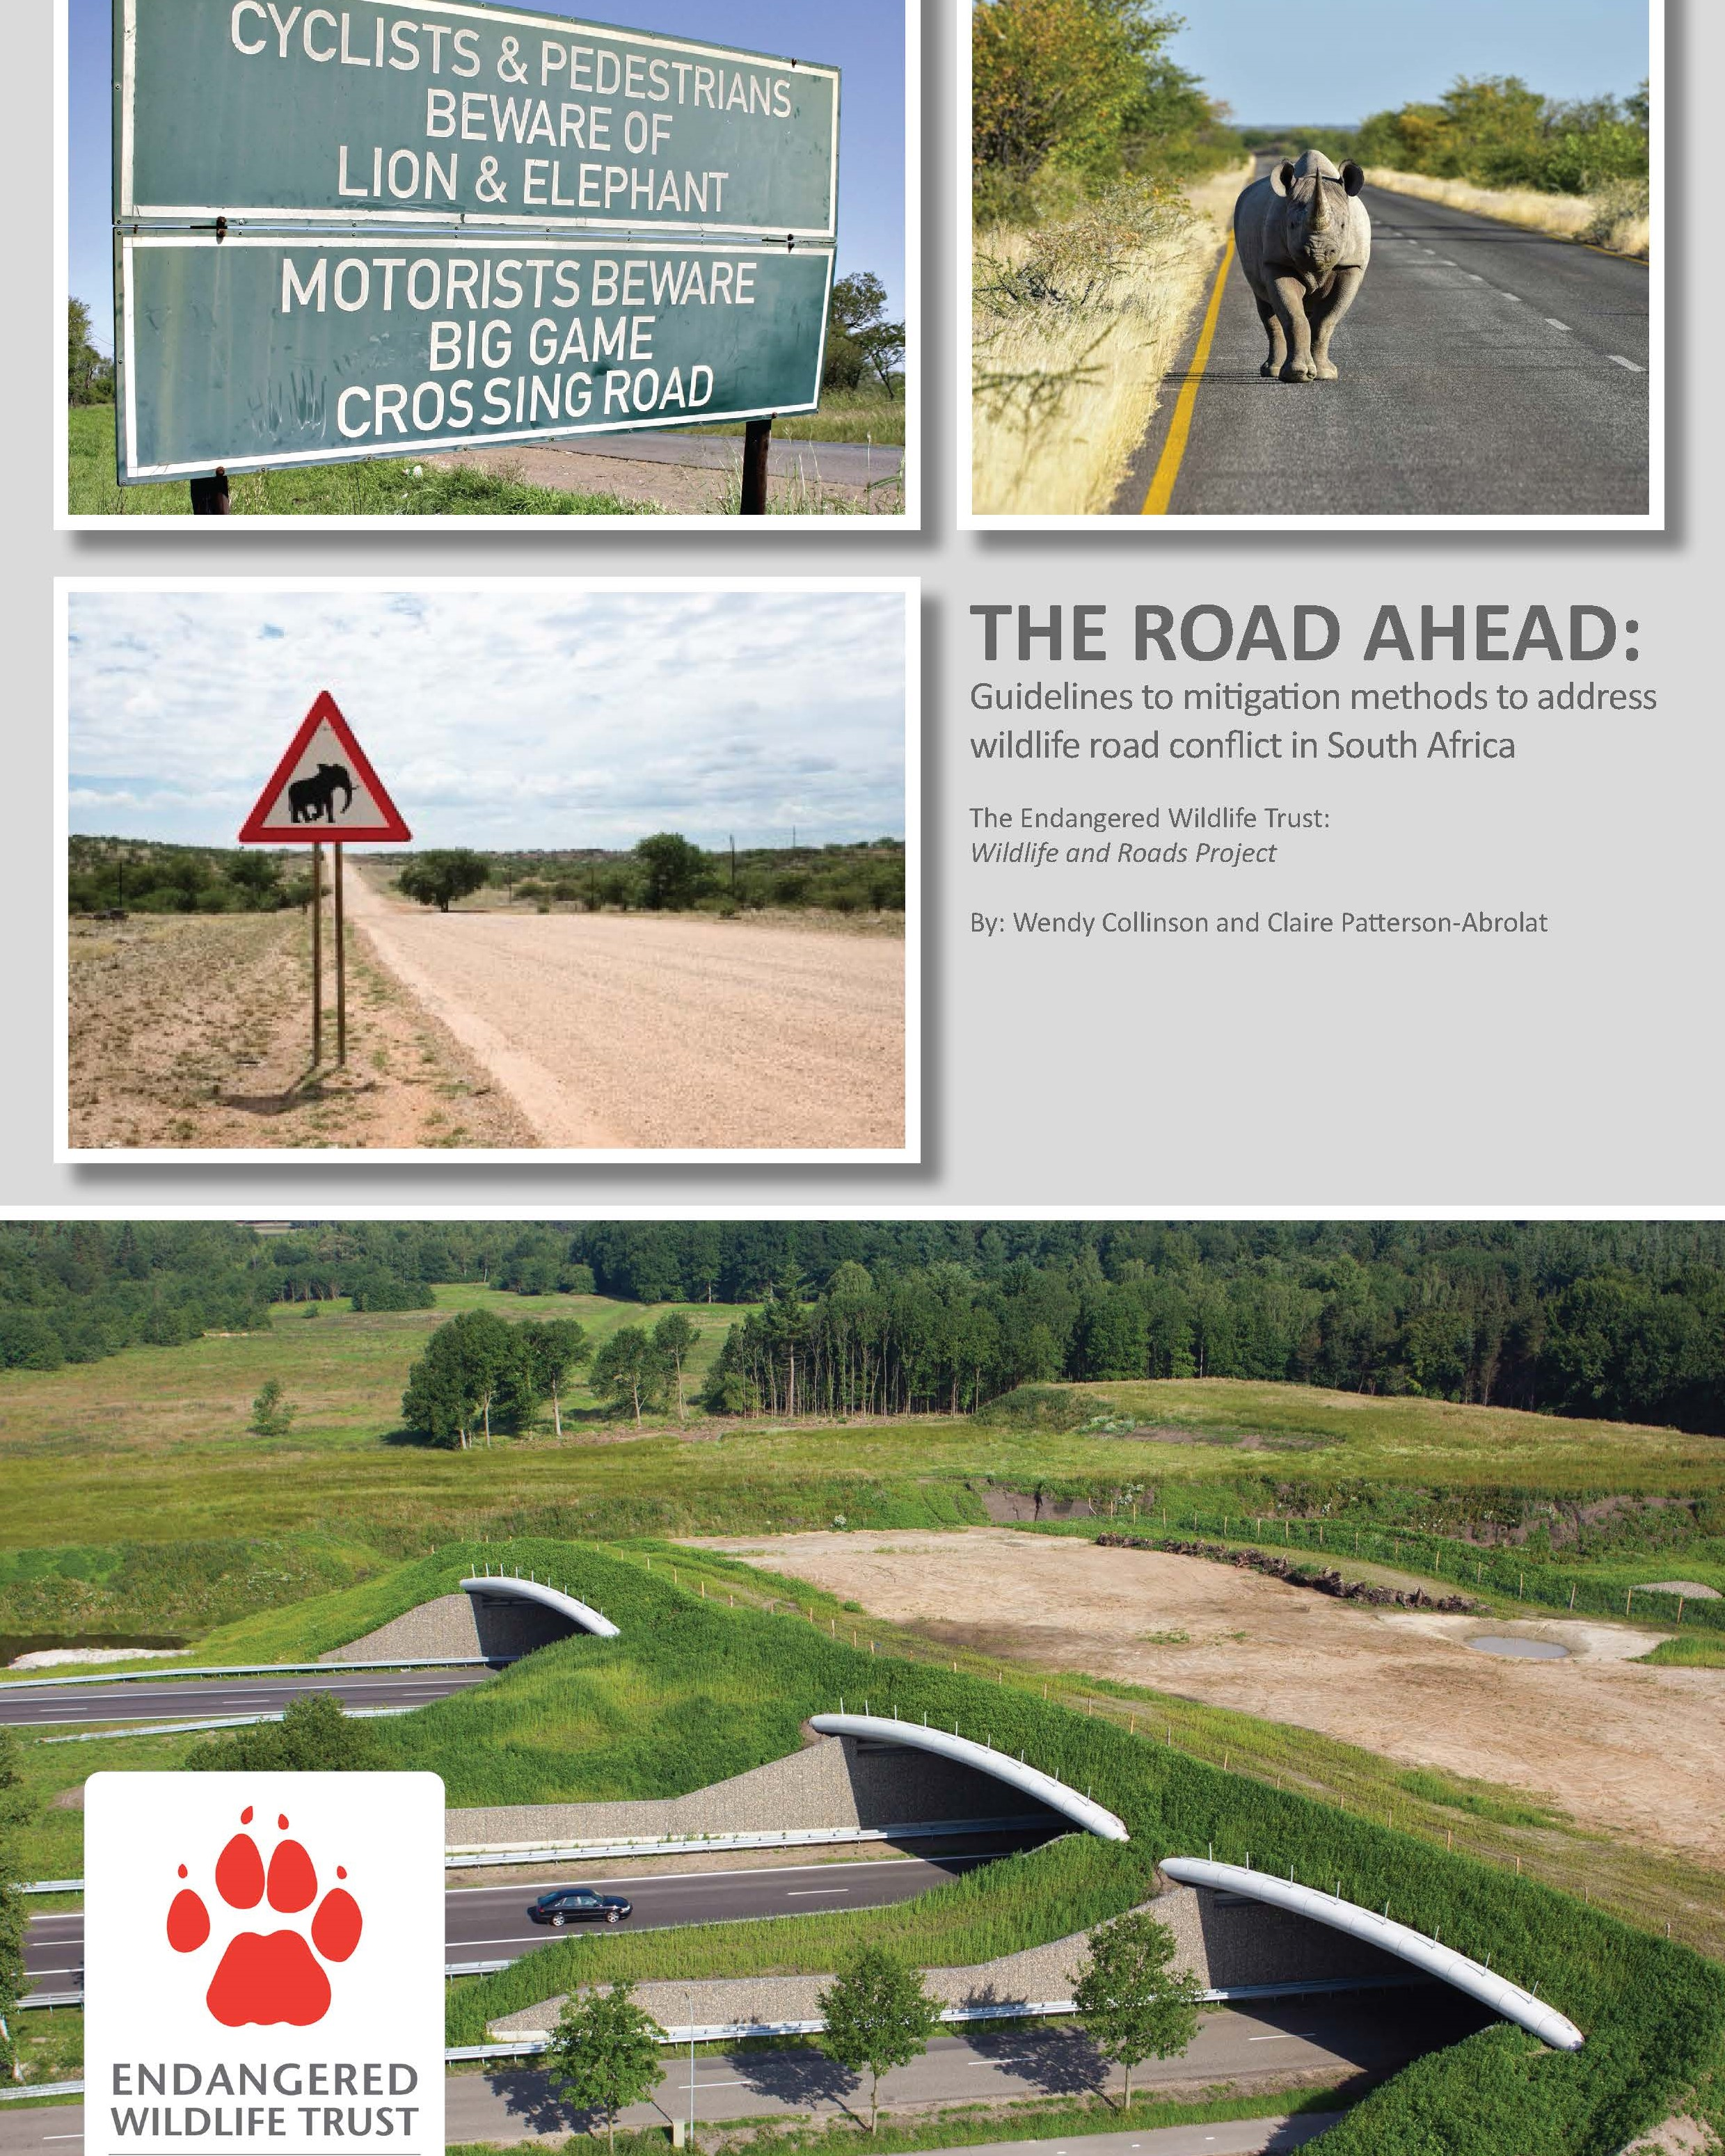 The Road Ahead: Guidelines to mitigation methods to address wildlife road conflict in South Africa. The Endangered Wildlife Trust